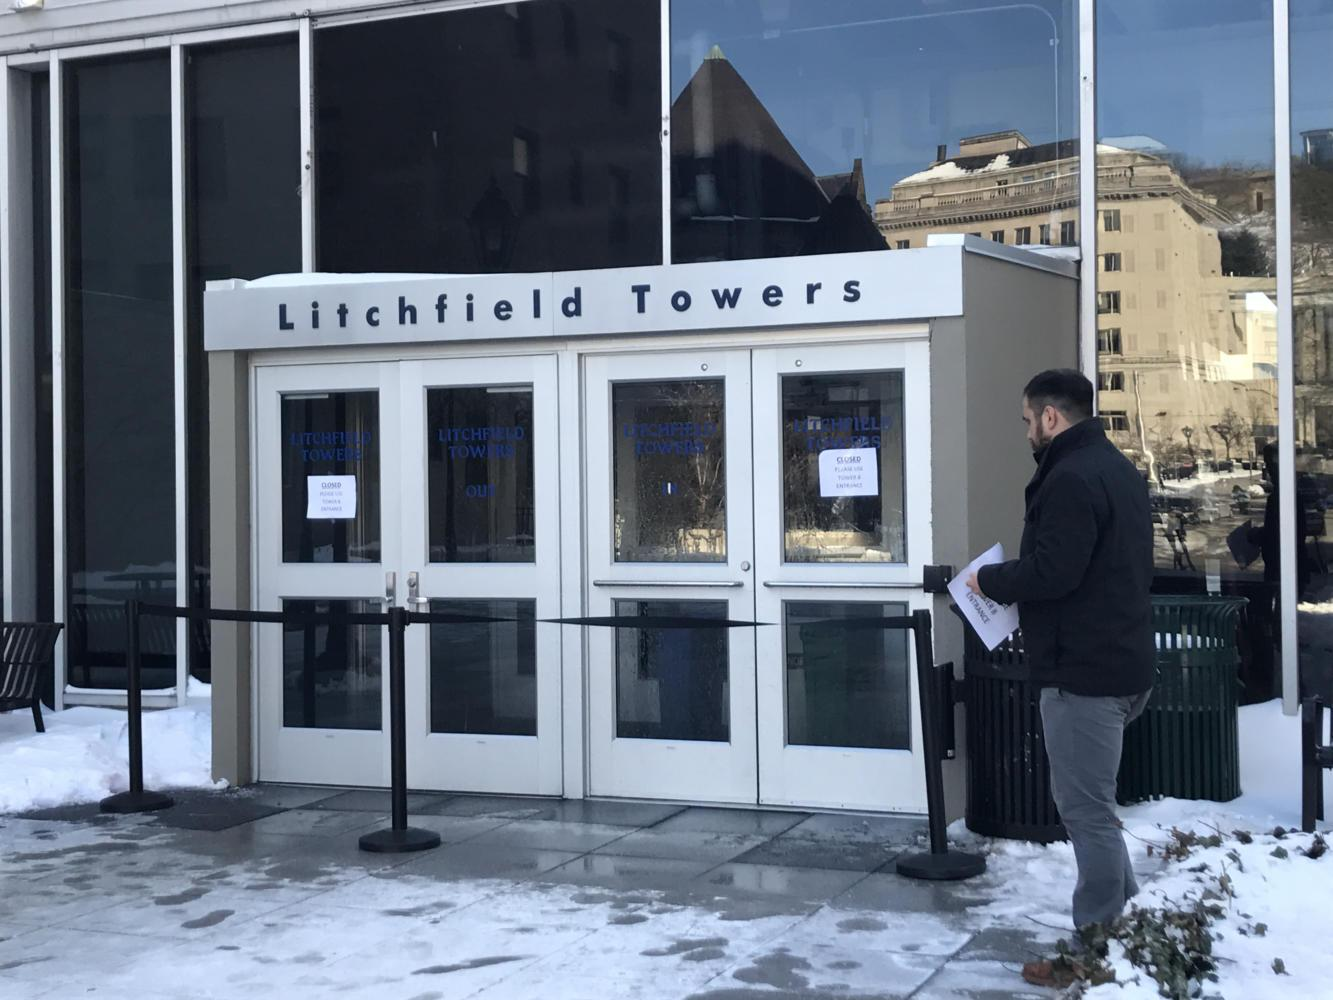 After a coil thawed at the Fifth Avenue entrance to the Litchfield Towers lobby, workers closed off the entrance. (Photo by Janine Faust / Assistant News Editor)